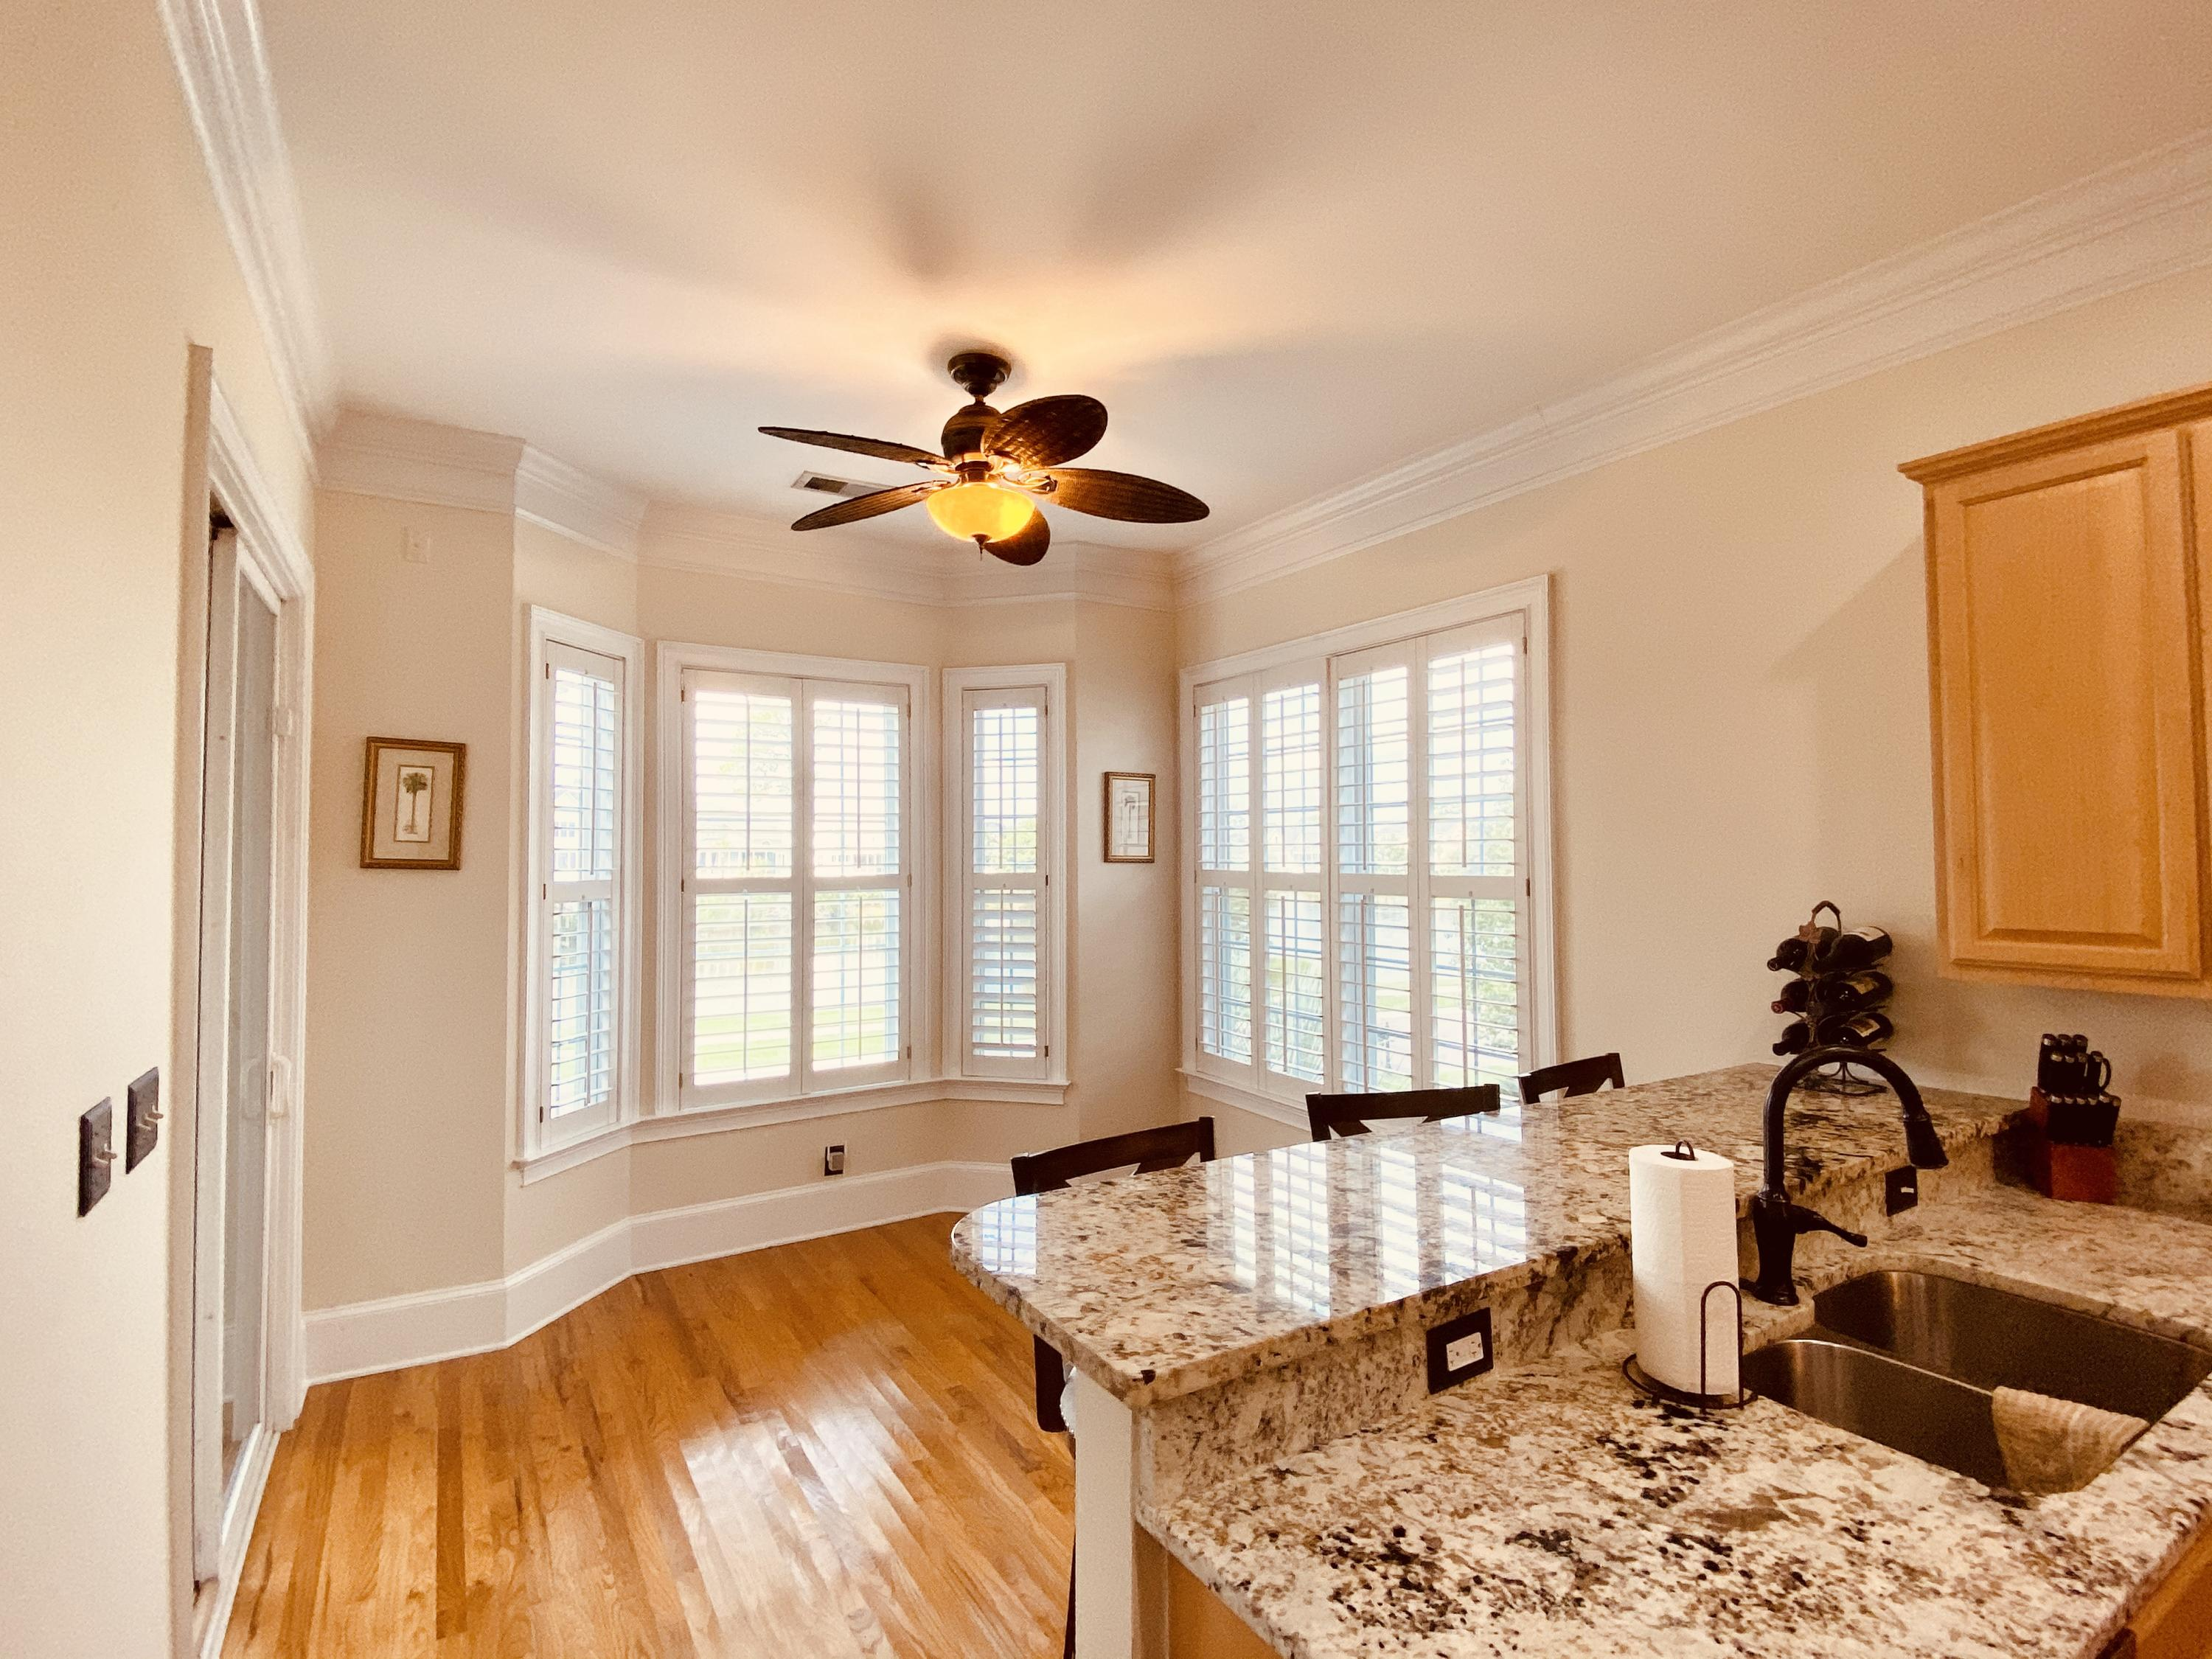 Rivertowne Country Club Homes For Sale - 1721 Rivertowne Country Club, Mount Pleasant, SC - 53